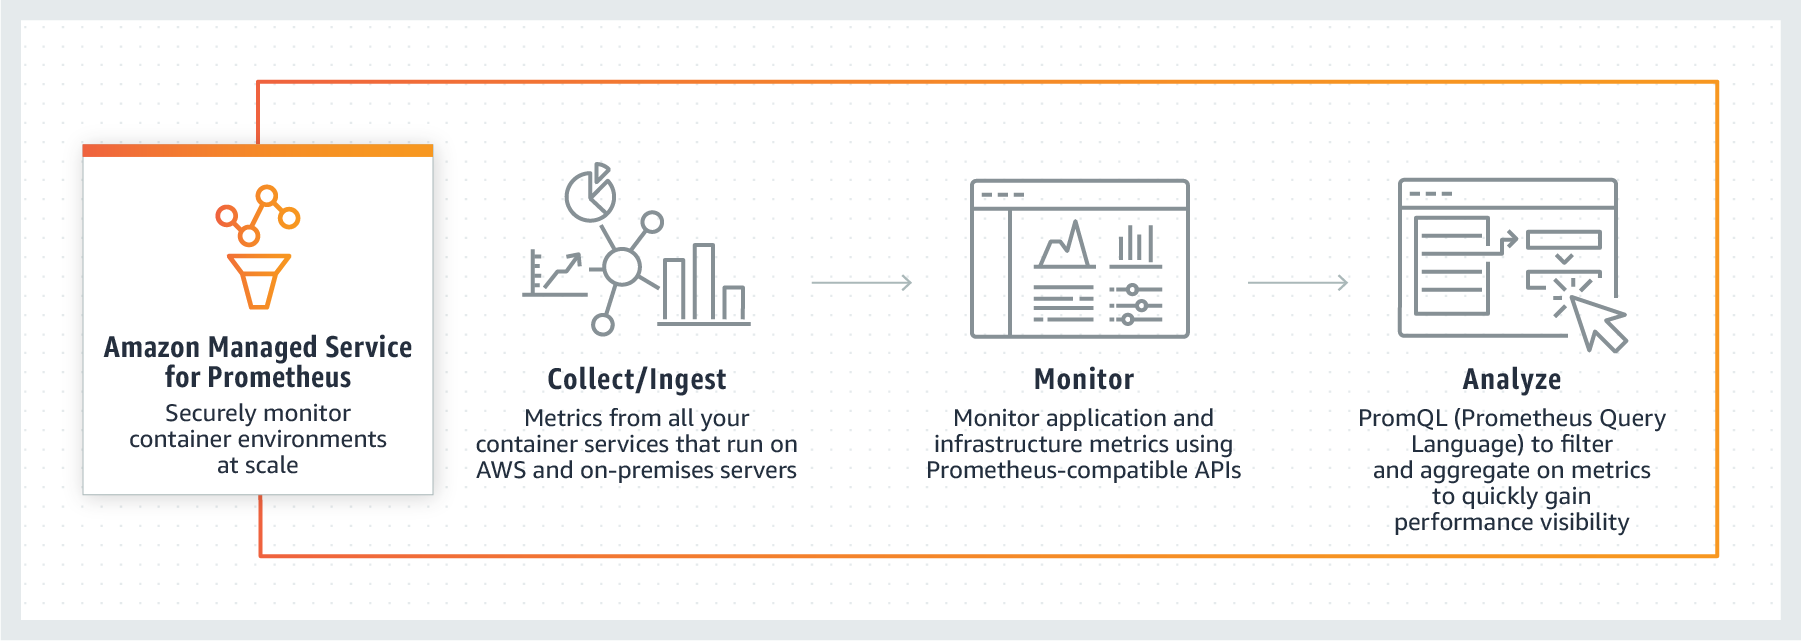 How Amazon Managed Service for Prometheus works